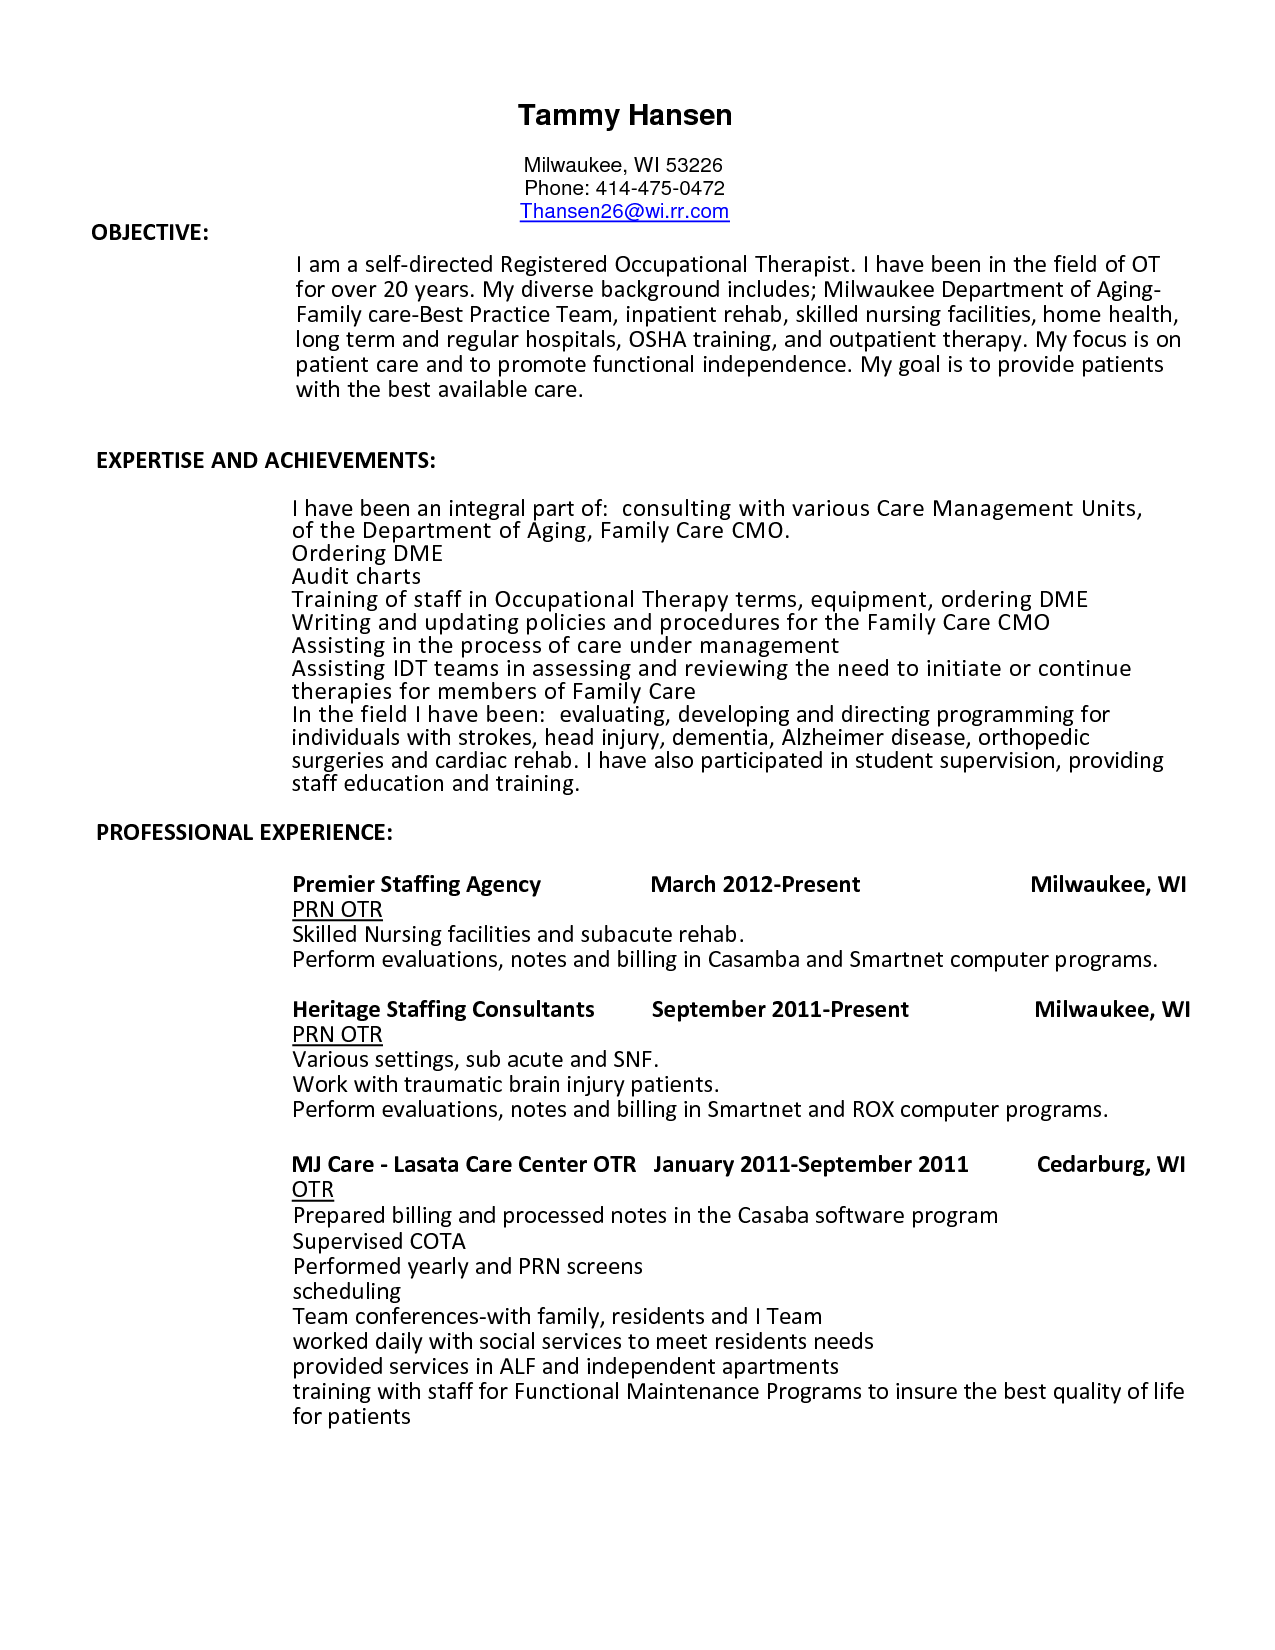 Cota L (With images) Resume examples, Professional